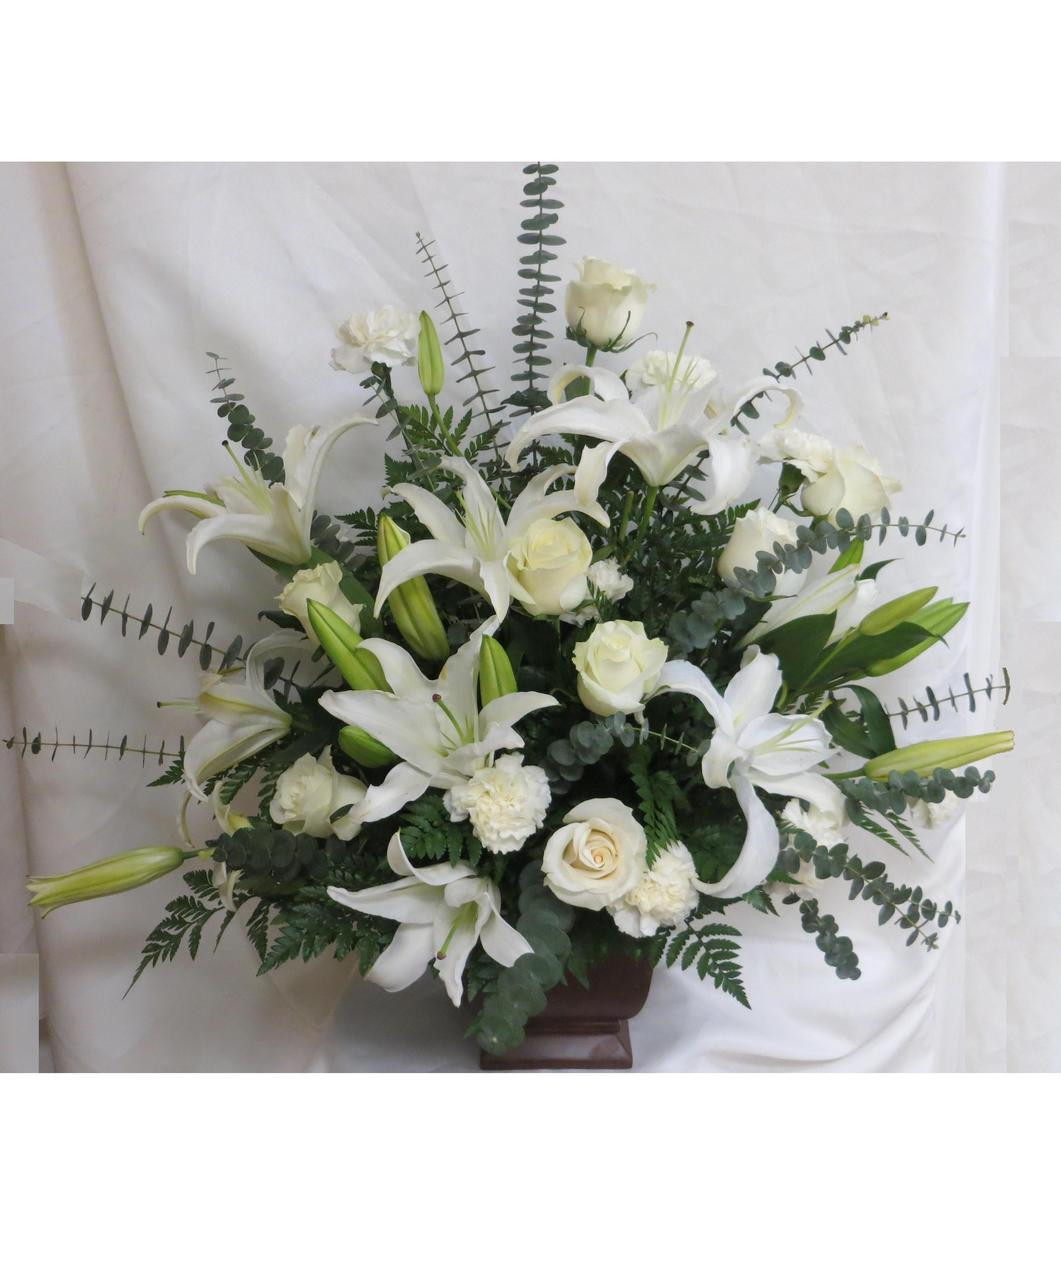 White funeral flowers delivered to houston funeral homes in houston tx white serenity urn flower arrangement are all white funeral flowers in a classic heritage urn and izmirmasajfo Image collections